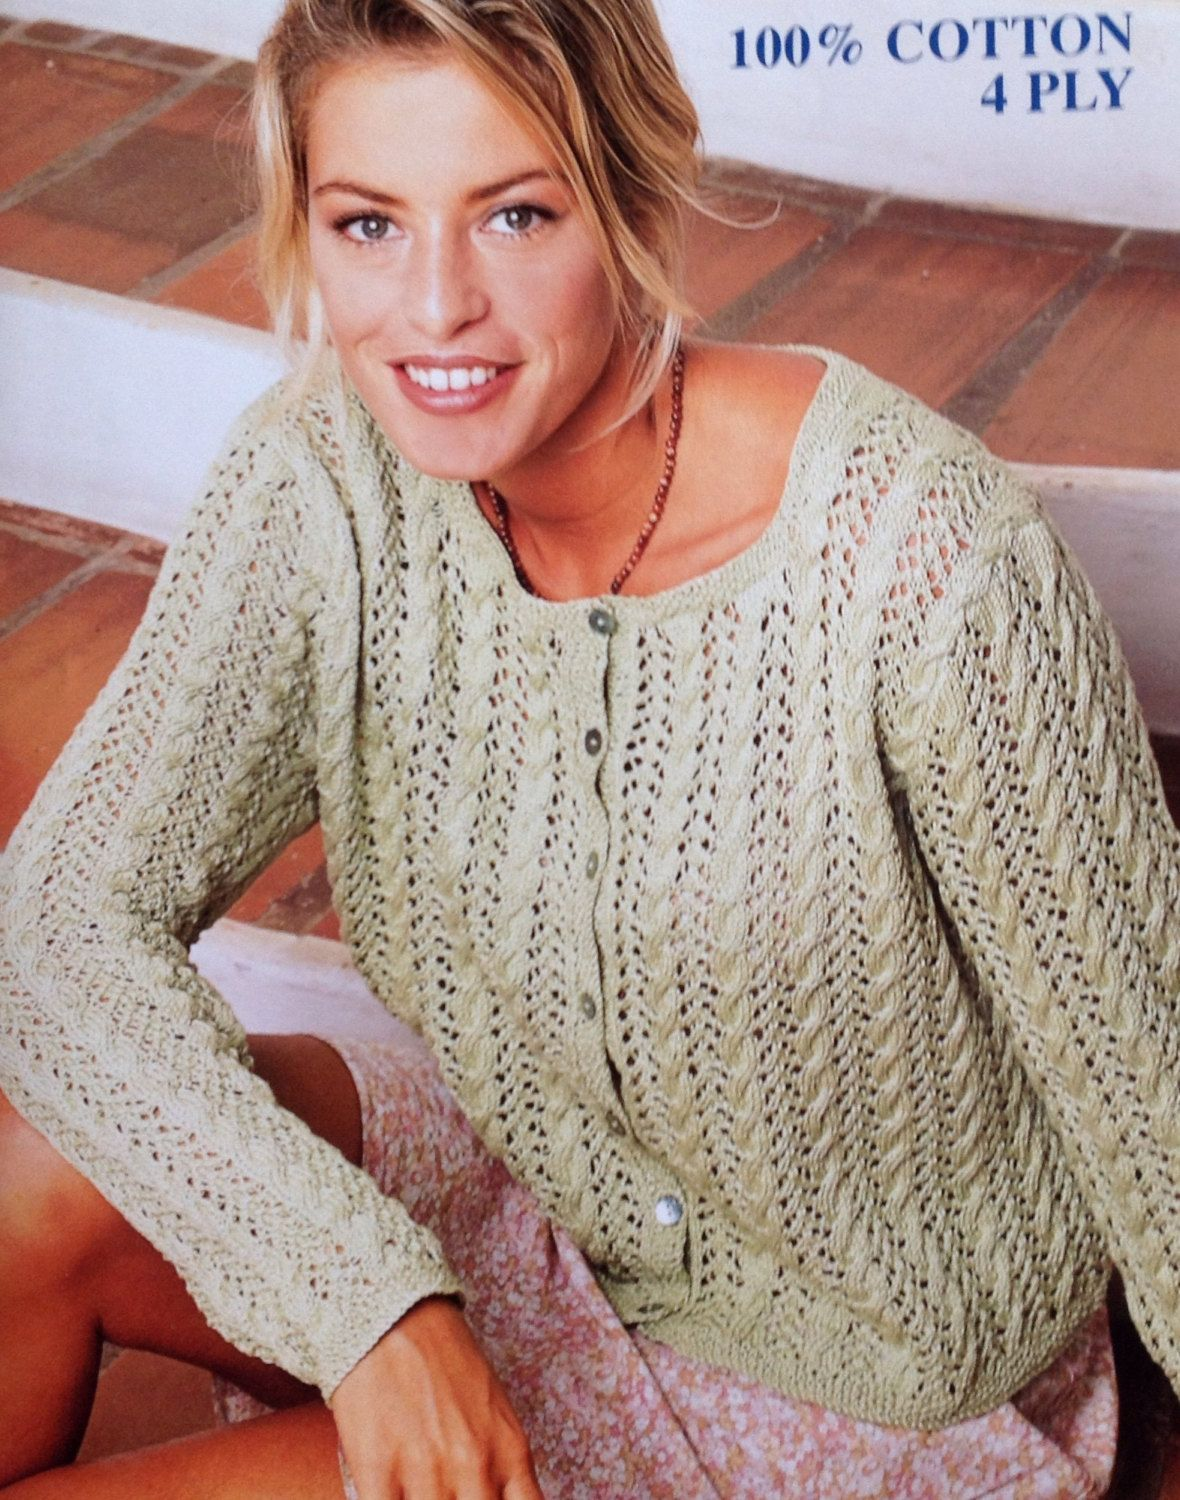 Ladieswomens 4 ply cotton lace cardigan knitting pattern size 32 ladieswomens 4 ply cotton lace cardigan knitting pattern size 32 42in 81 bankloansurffo Image collections